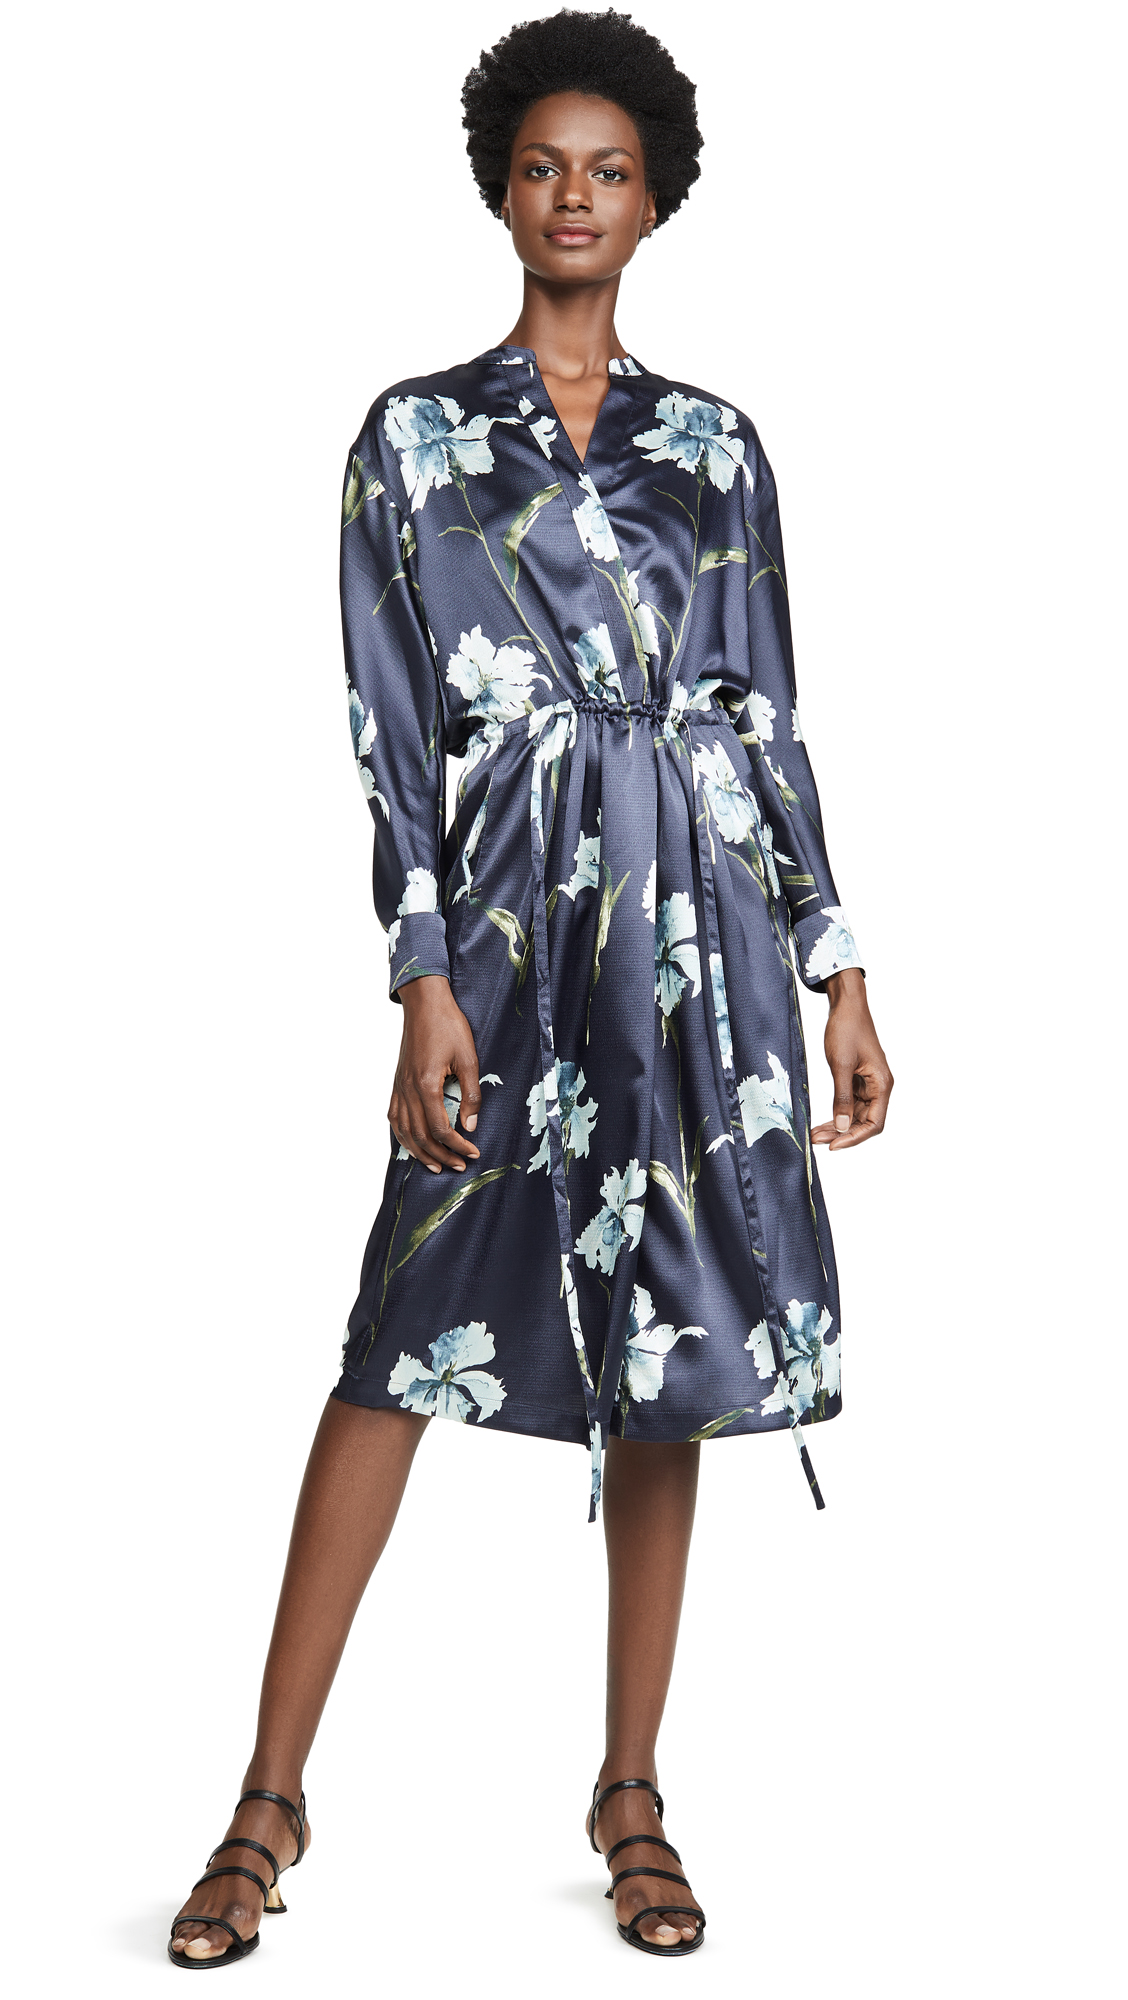 Vince Iris Print Satin Dress - 70% Off Sale